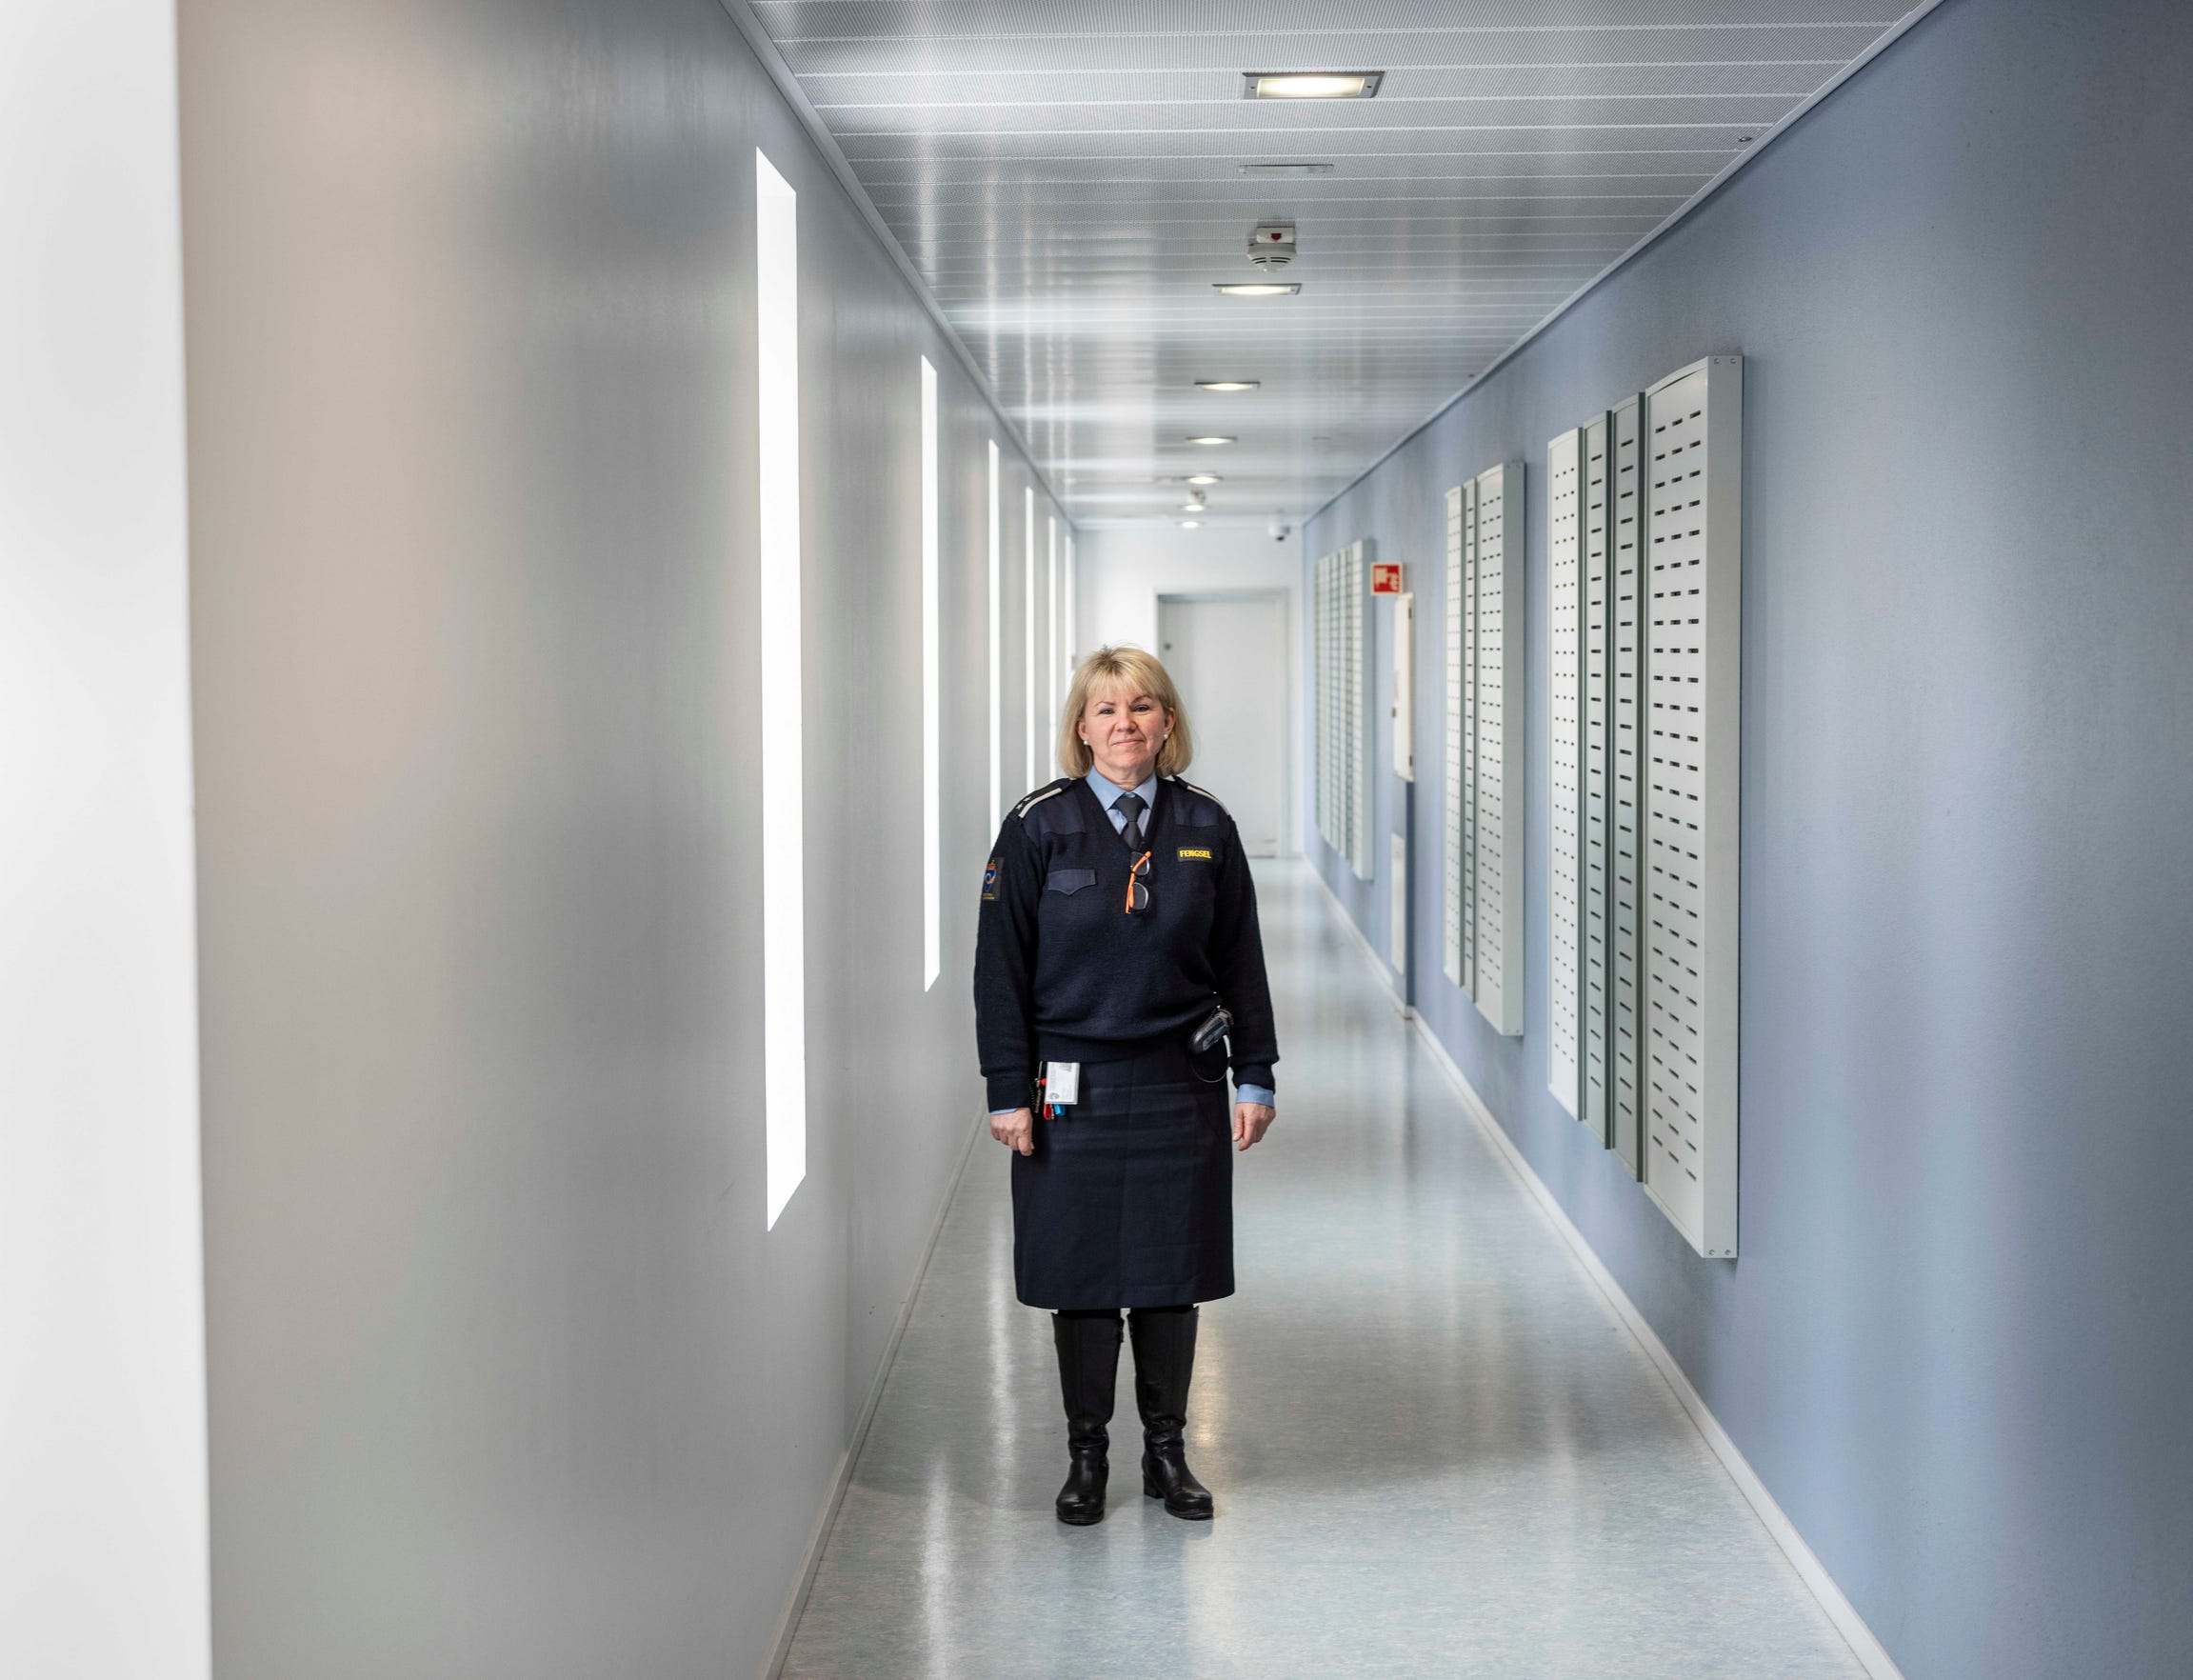 Works manager Janne Hasle stands in a light-filled corridor at Halden Prison in Norway, where inmates live in dorm-like rooms in three buildings on a campus filled with trees.